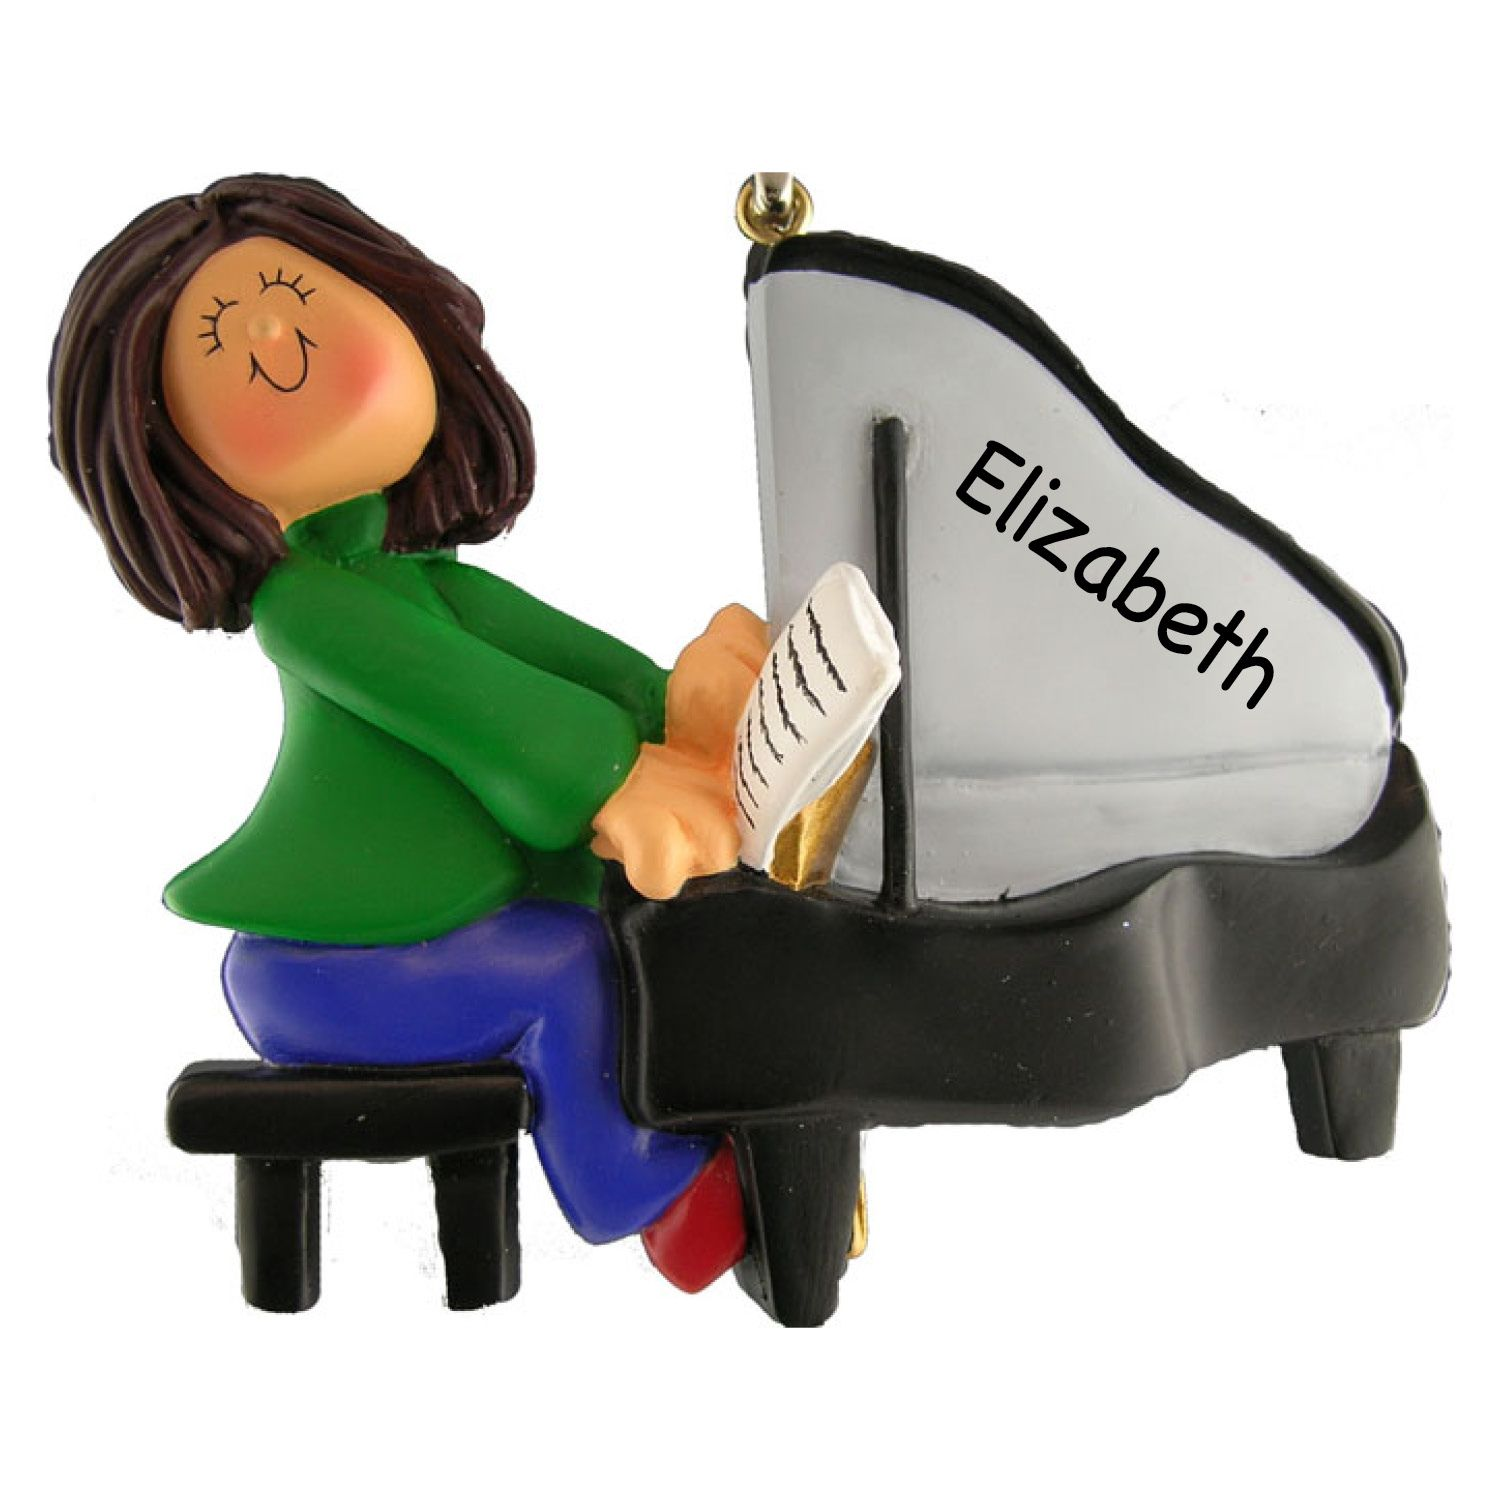 The perfect personalized ornament for the piano player ...